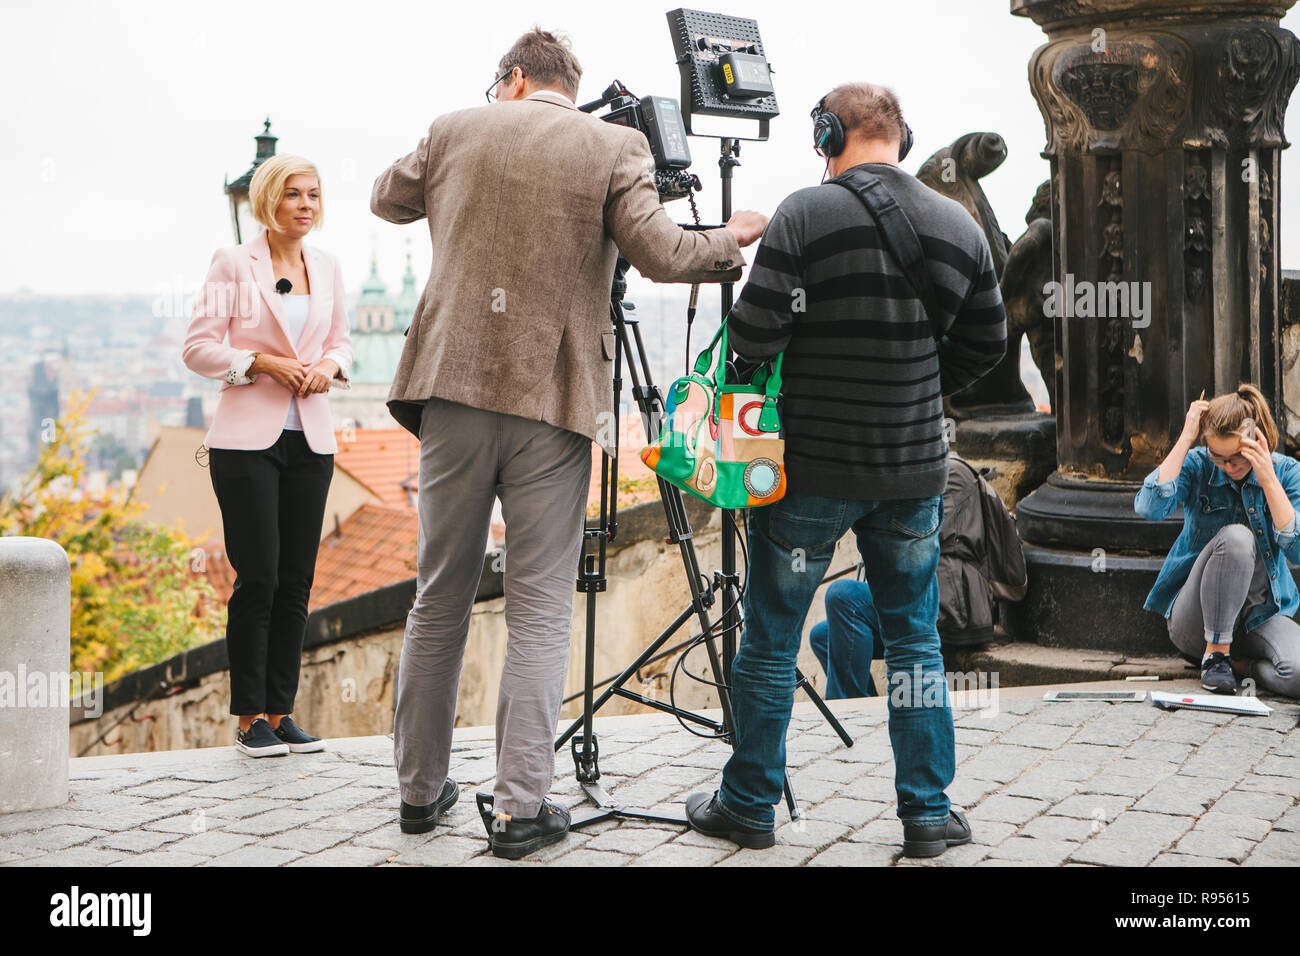 Prague, October 28, 2017: Team of operators and journalists shoot report next to the Prague Castle. - Stock Image